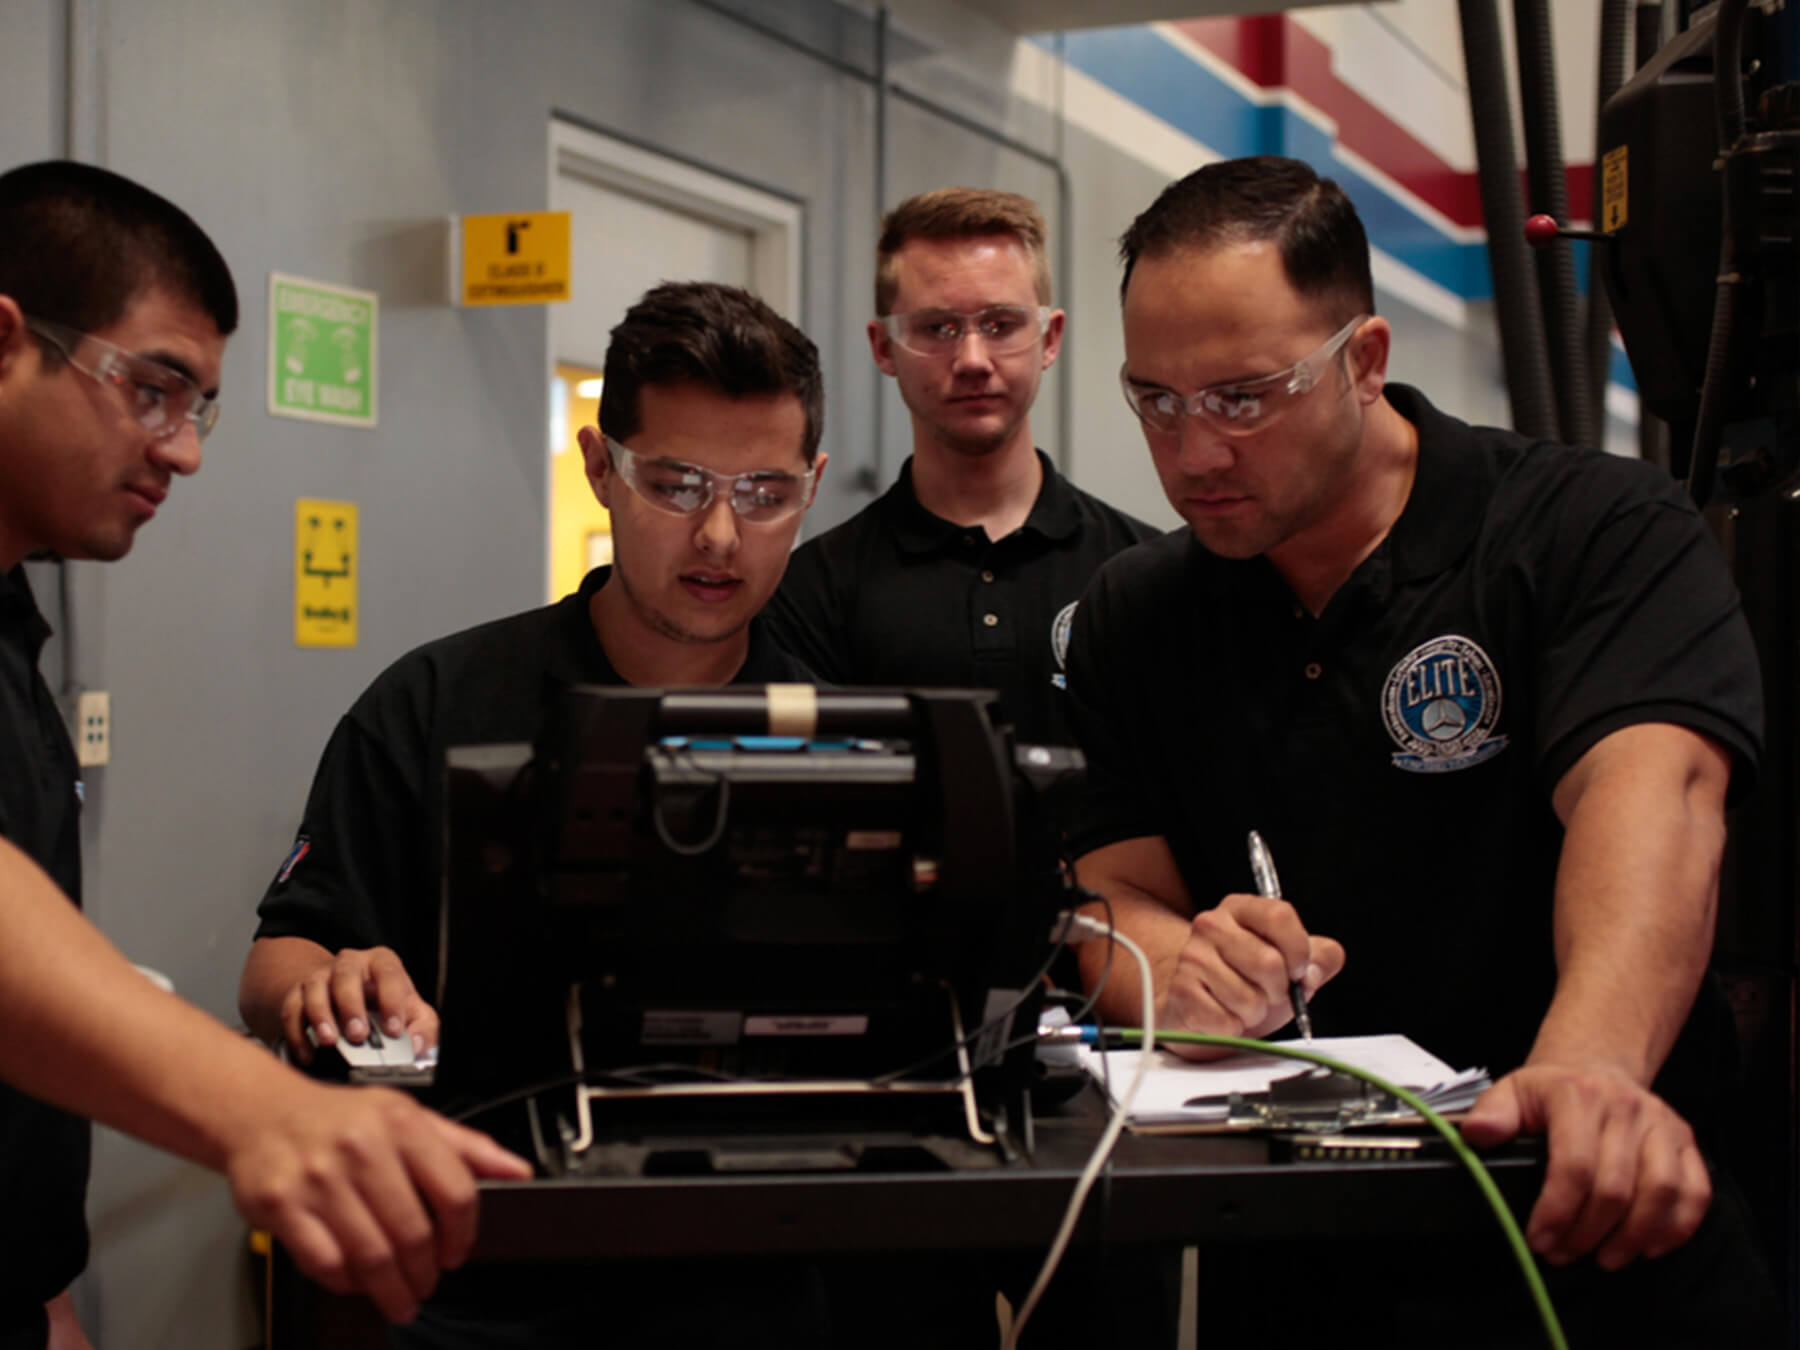 UTI students looking at a computer in auto lab